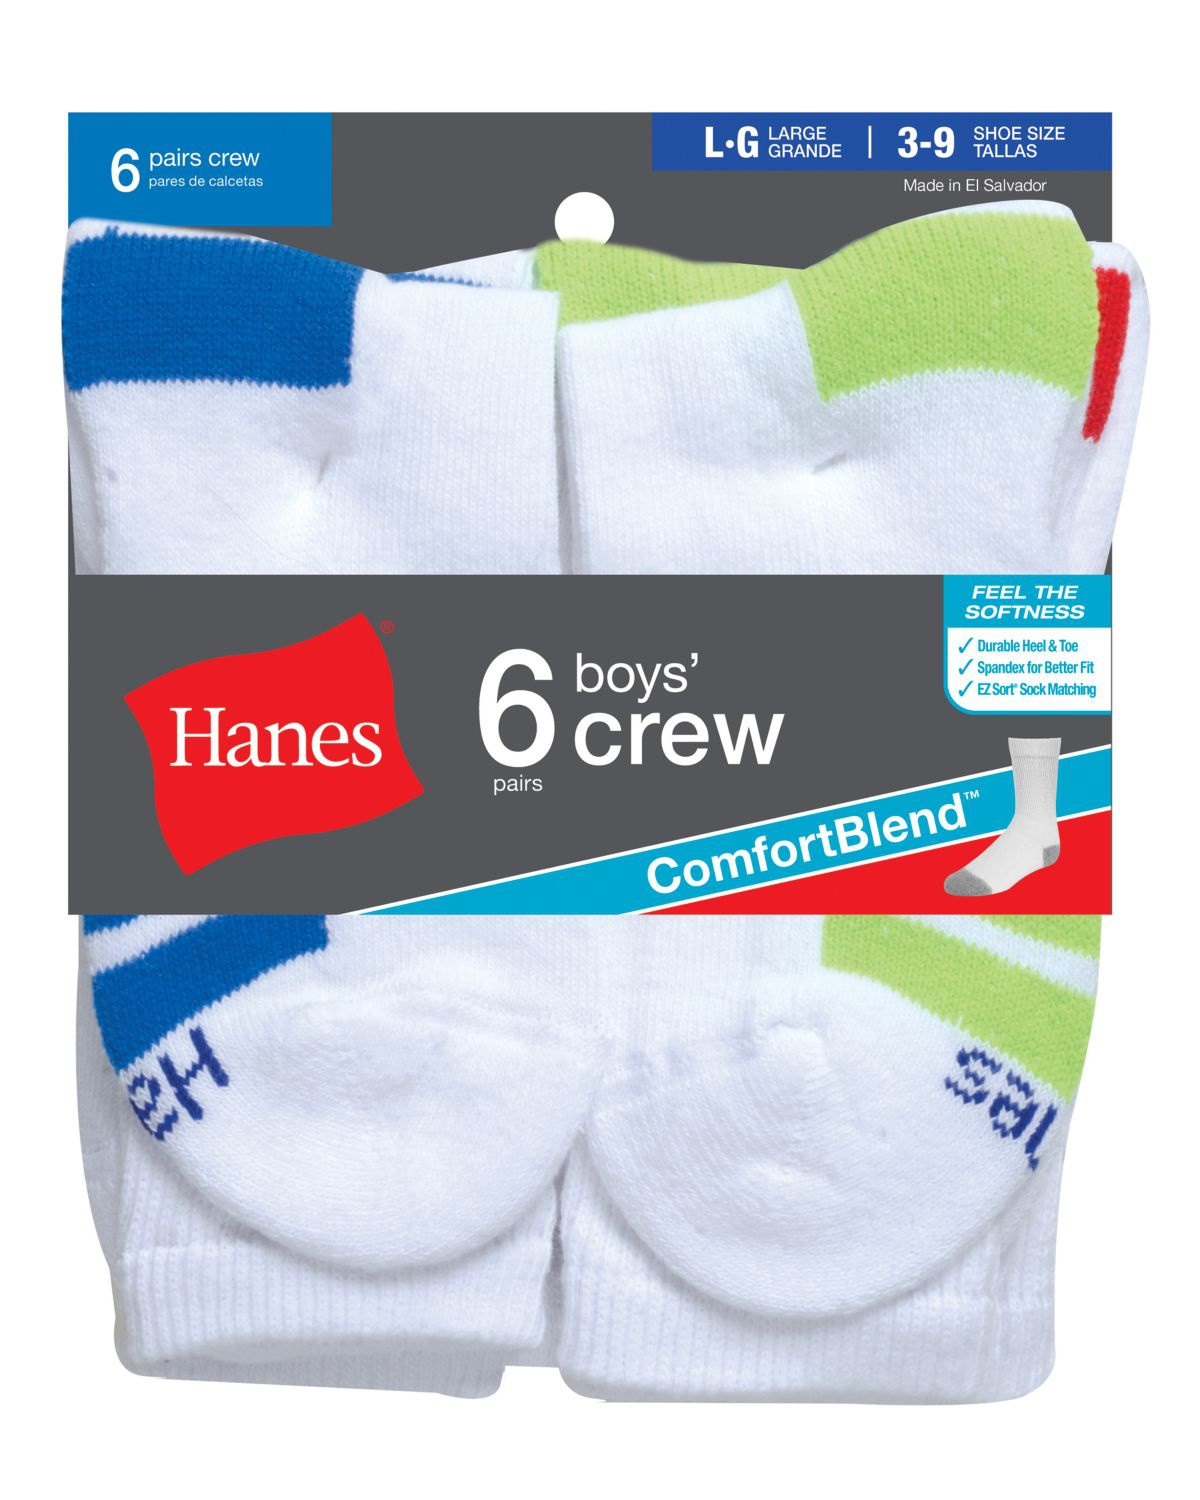 'Hanes 431/6 Boys' Crew ComfortBlend Assorted Socks 6-Pack'